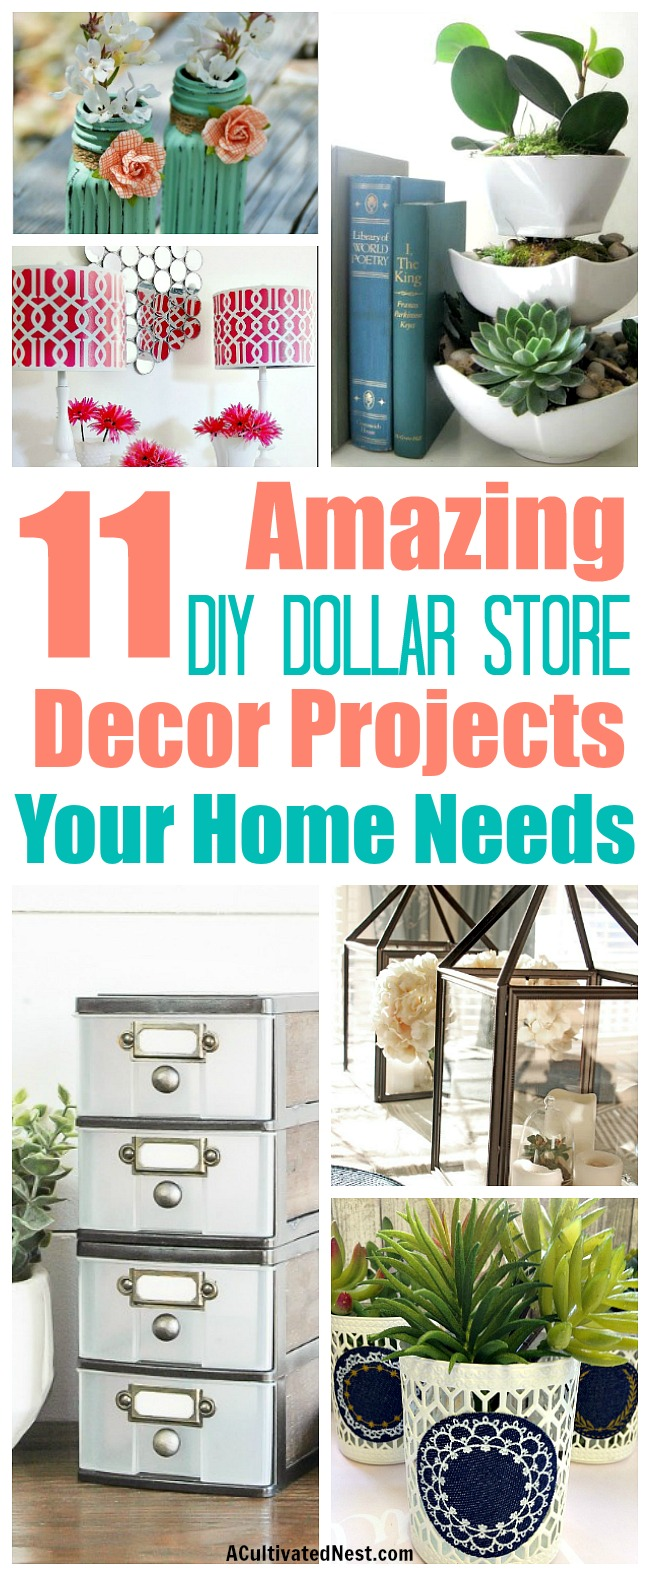 DIY Dollar Store Decorating Ideas- It's possible to have a beautiful home on a budget! Check out these brilliant DIY Dollar Store Home Decorating Projects! After all, it doesn't get much cheaper than the dollar store. You won't believe that these beautiful projects started out as dollar store items! | DIY home decorating ideas, decorating on a budget #diy #decor #dollarStore #craft